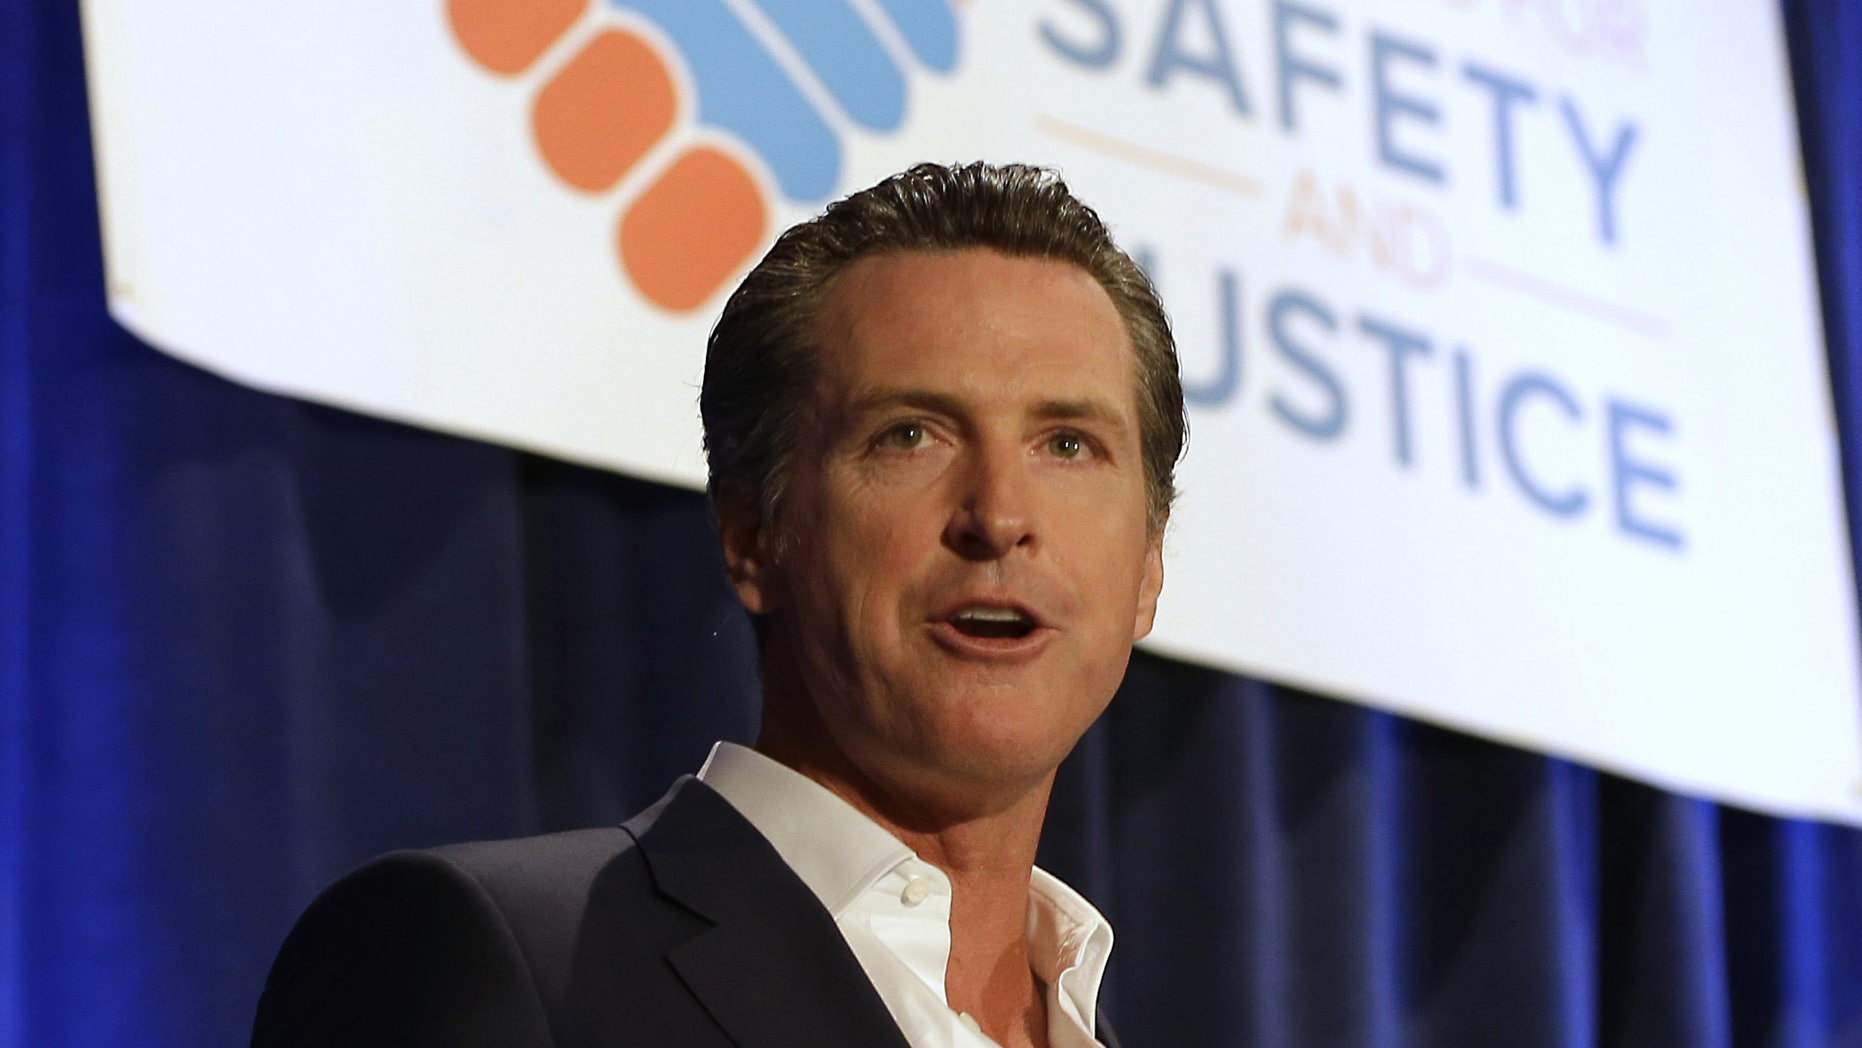 FILE - In this April 20, 2015, file photo, California Lt. Gov. Gavin Newsom speaks at the Californians for Safety and Justice conference in Sacramento, Calif.